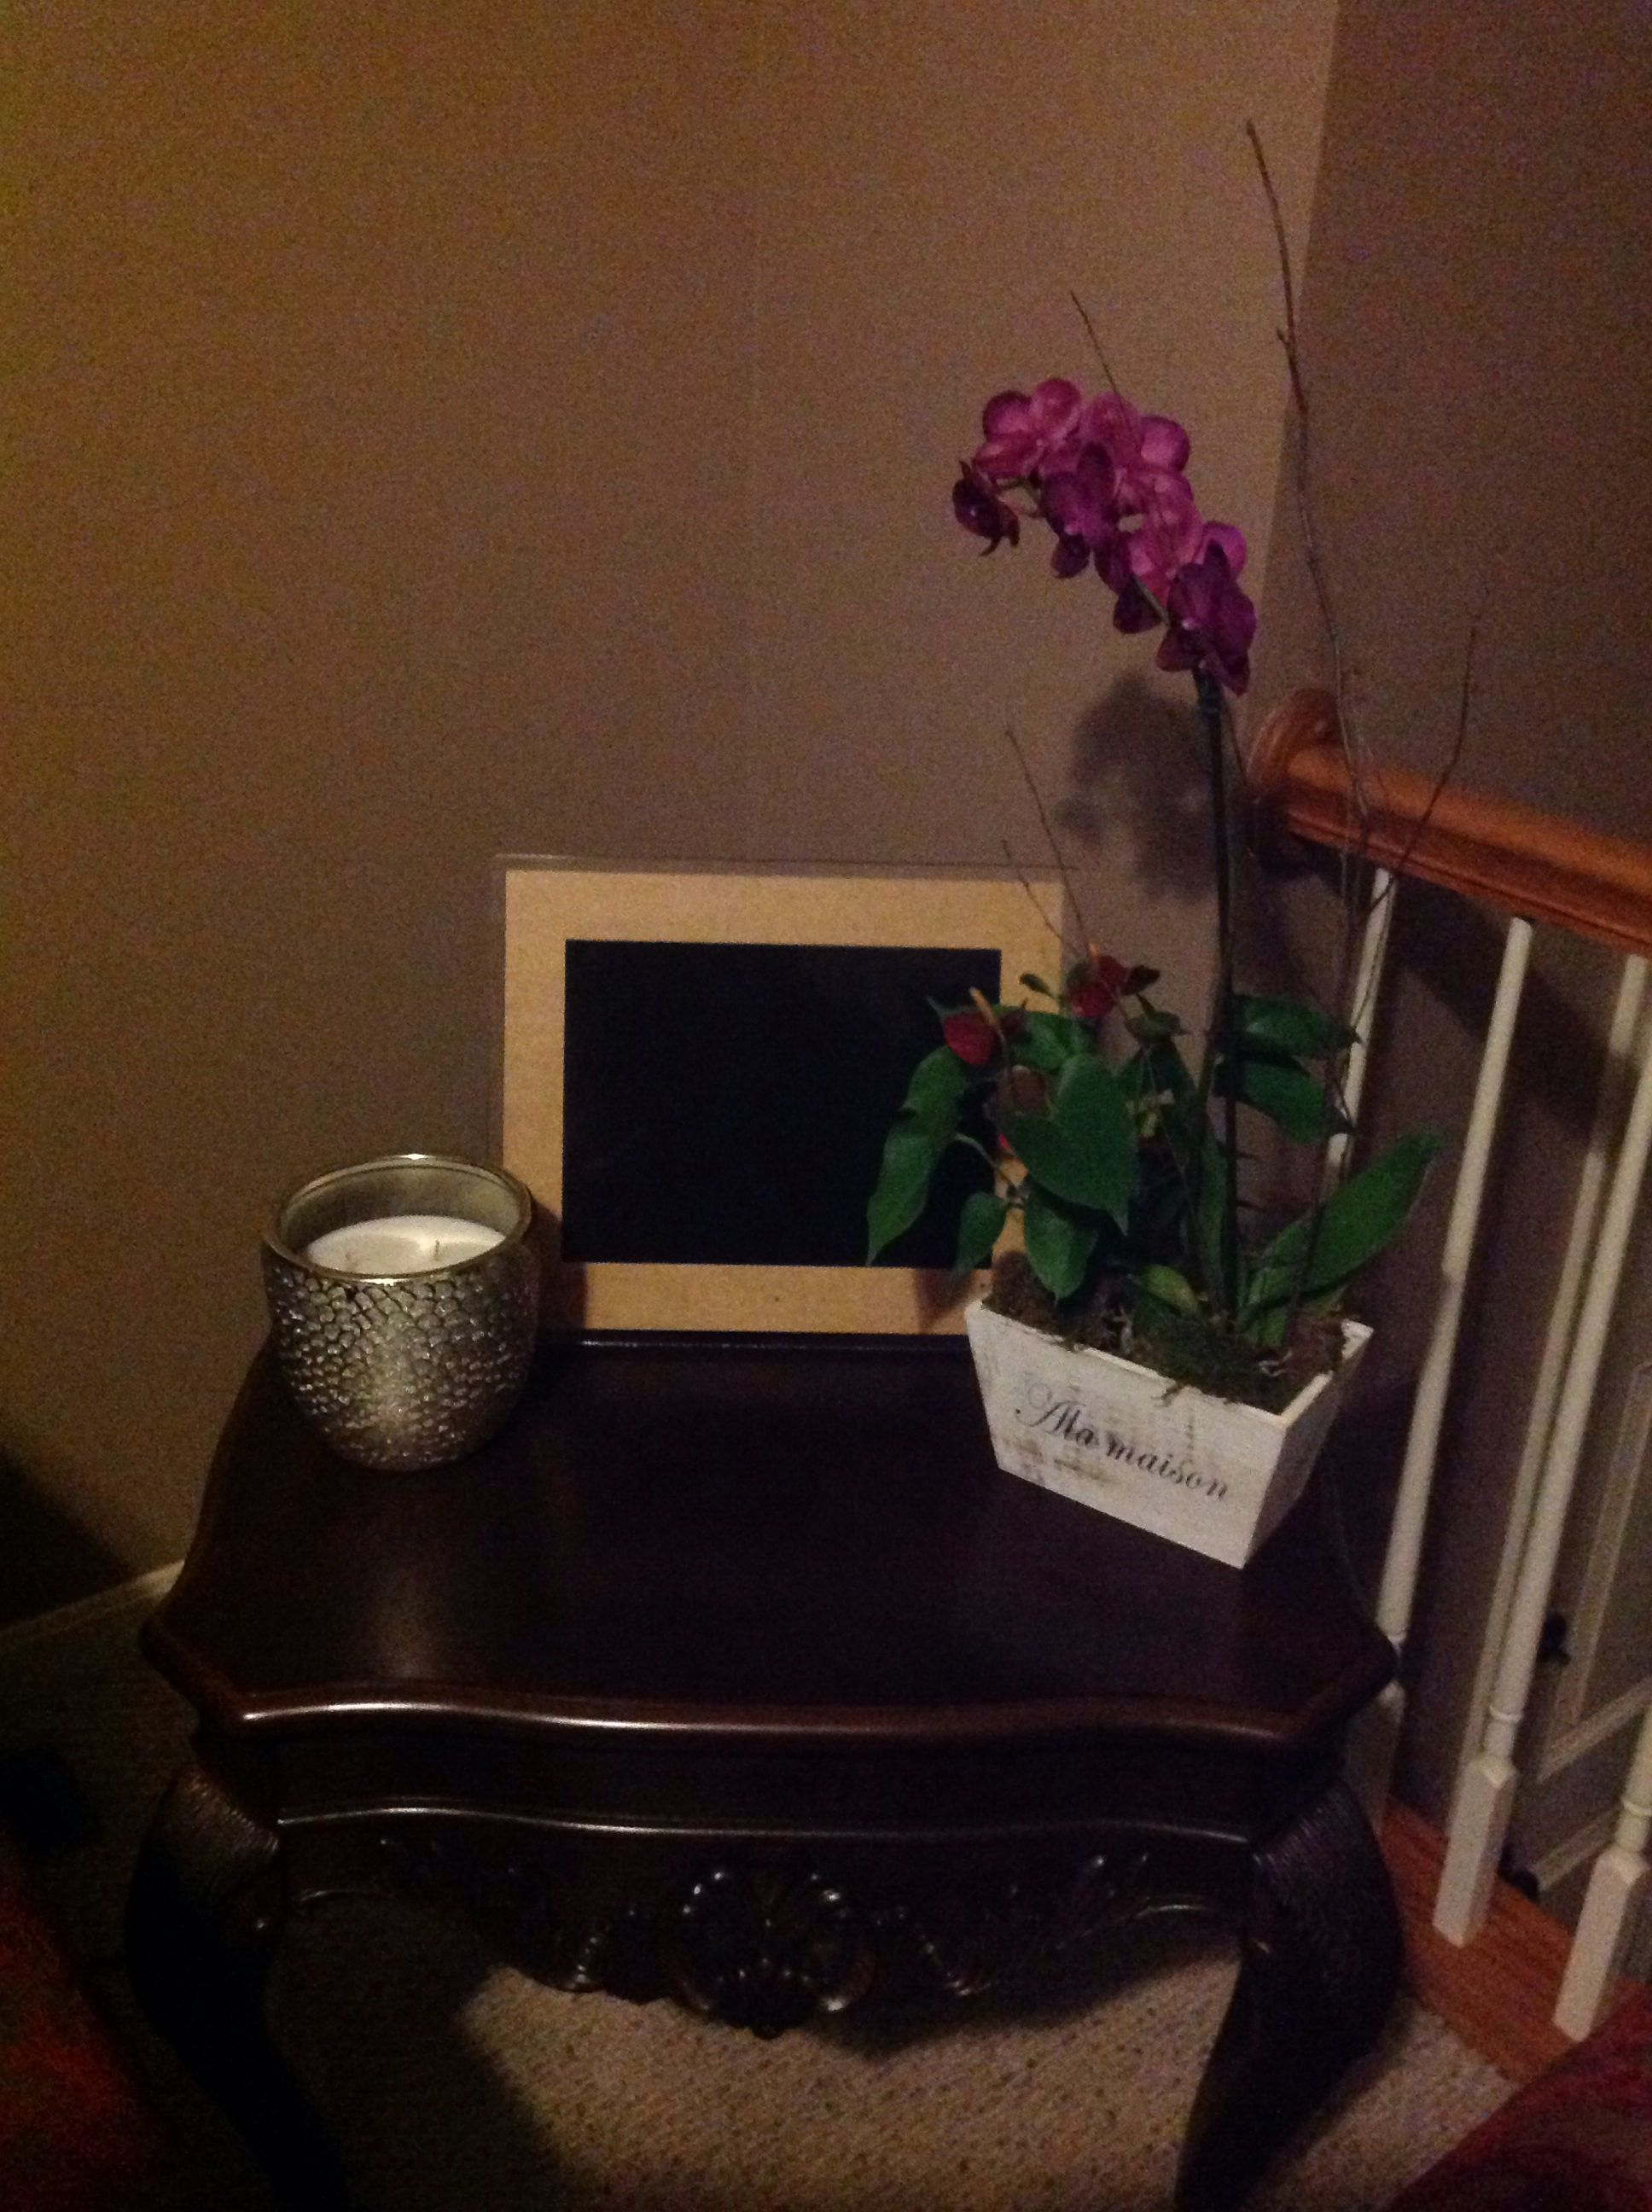 Candle from Homegoods, orchid from Costco and digital photo frame courtesy of my boyfriends mom.